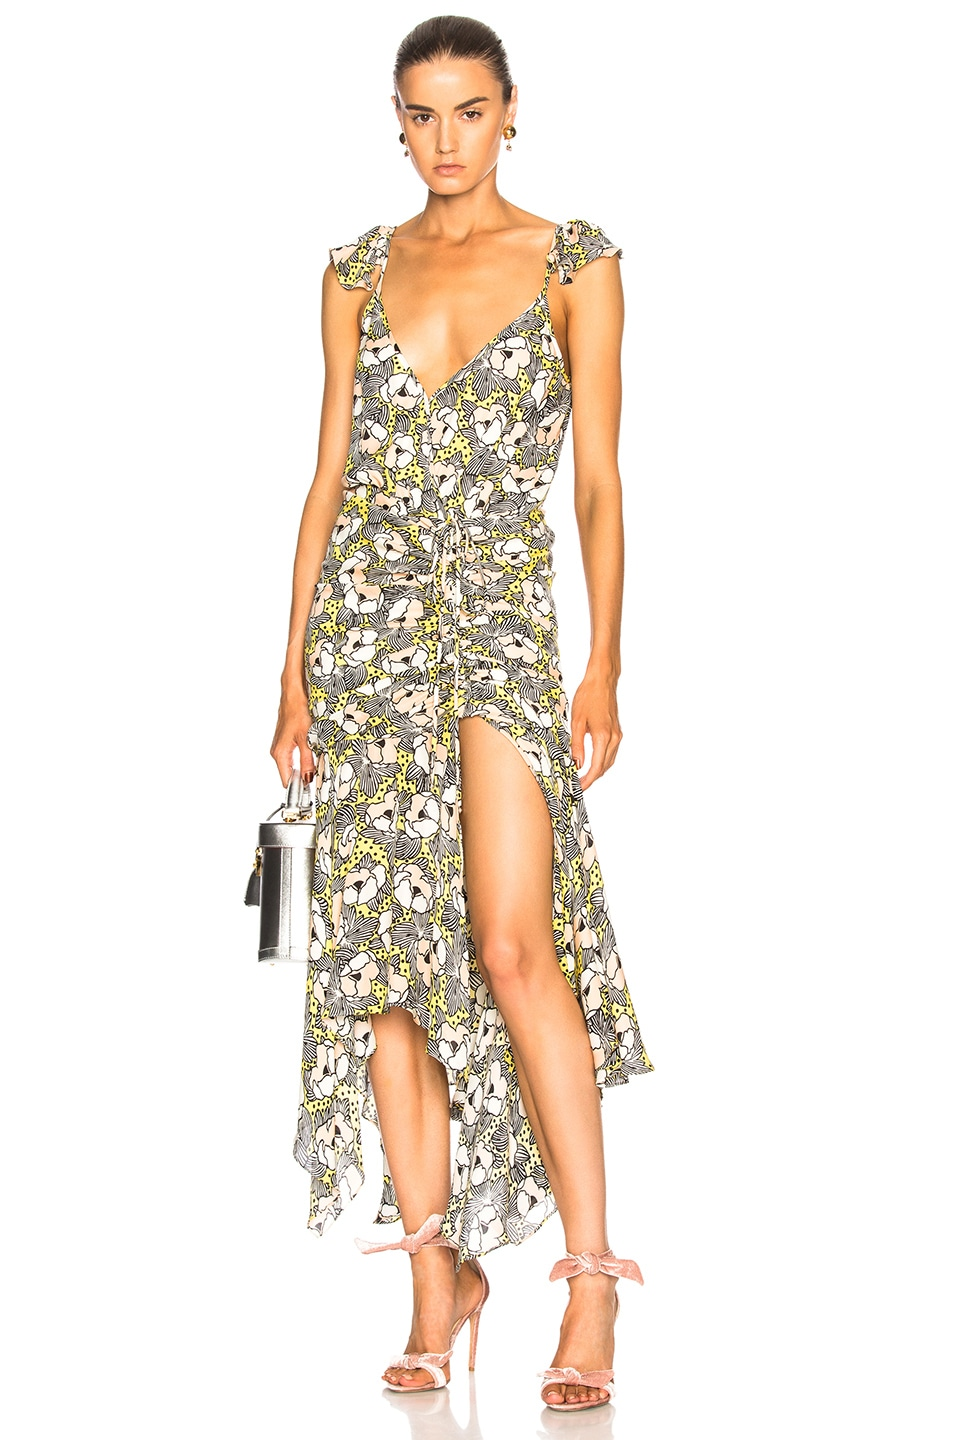 VERONICA BEARD MARTINE DRESS IN GREEN,FORAL